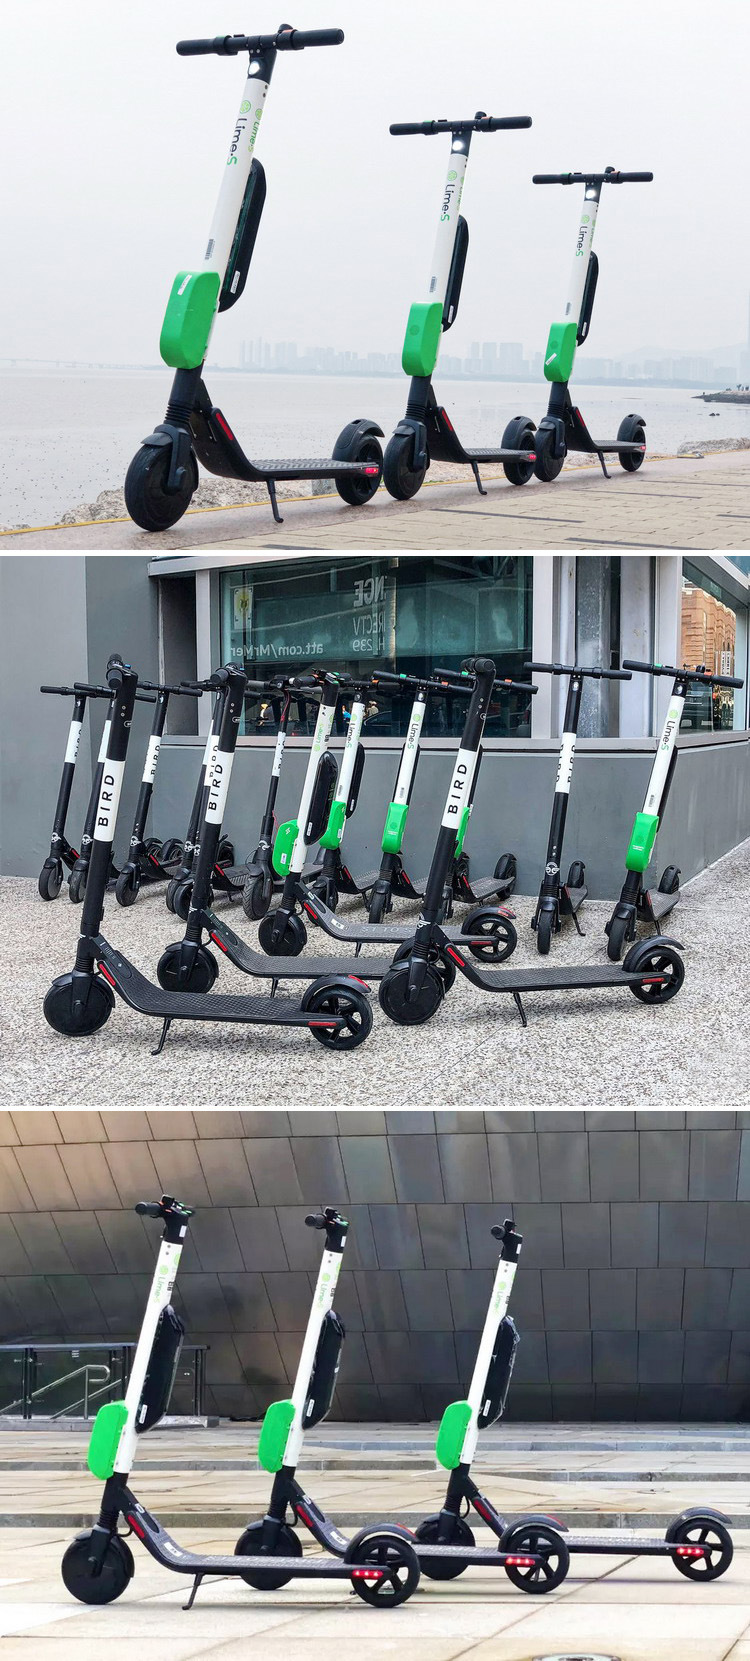 Segway Top Speed 30km H Original Bird Sharing Electric Scooter Ninebot Es4 Two Wheel Foldable Lime Sharing Scooter China Sharing Scooter And Electric Scooter Sharing Price Made In China Com